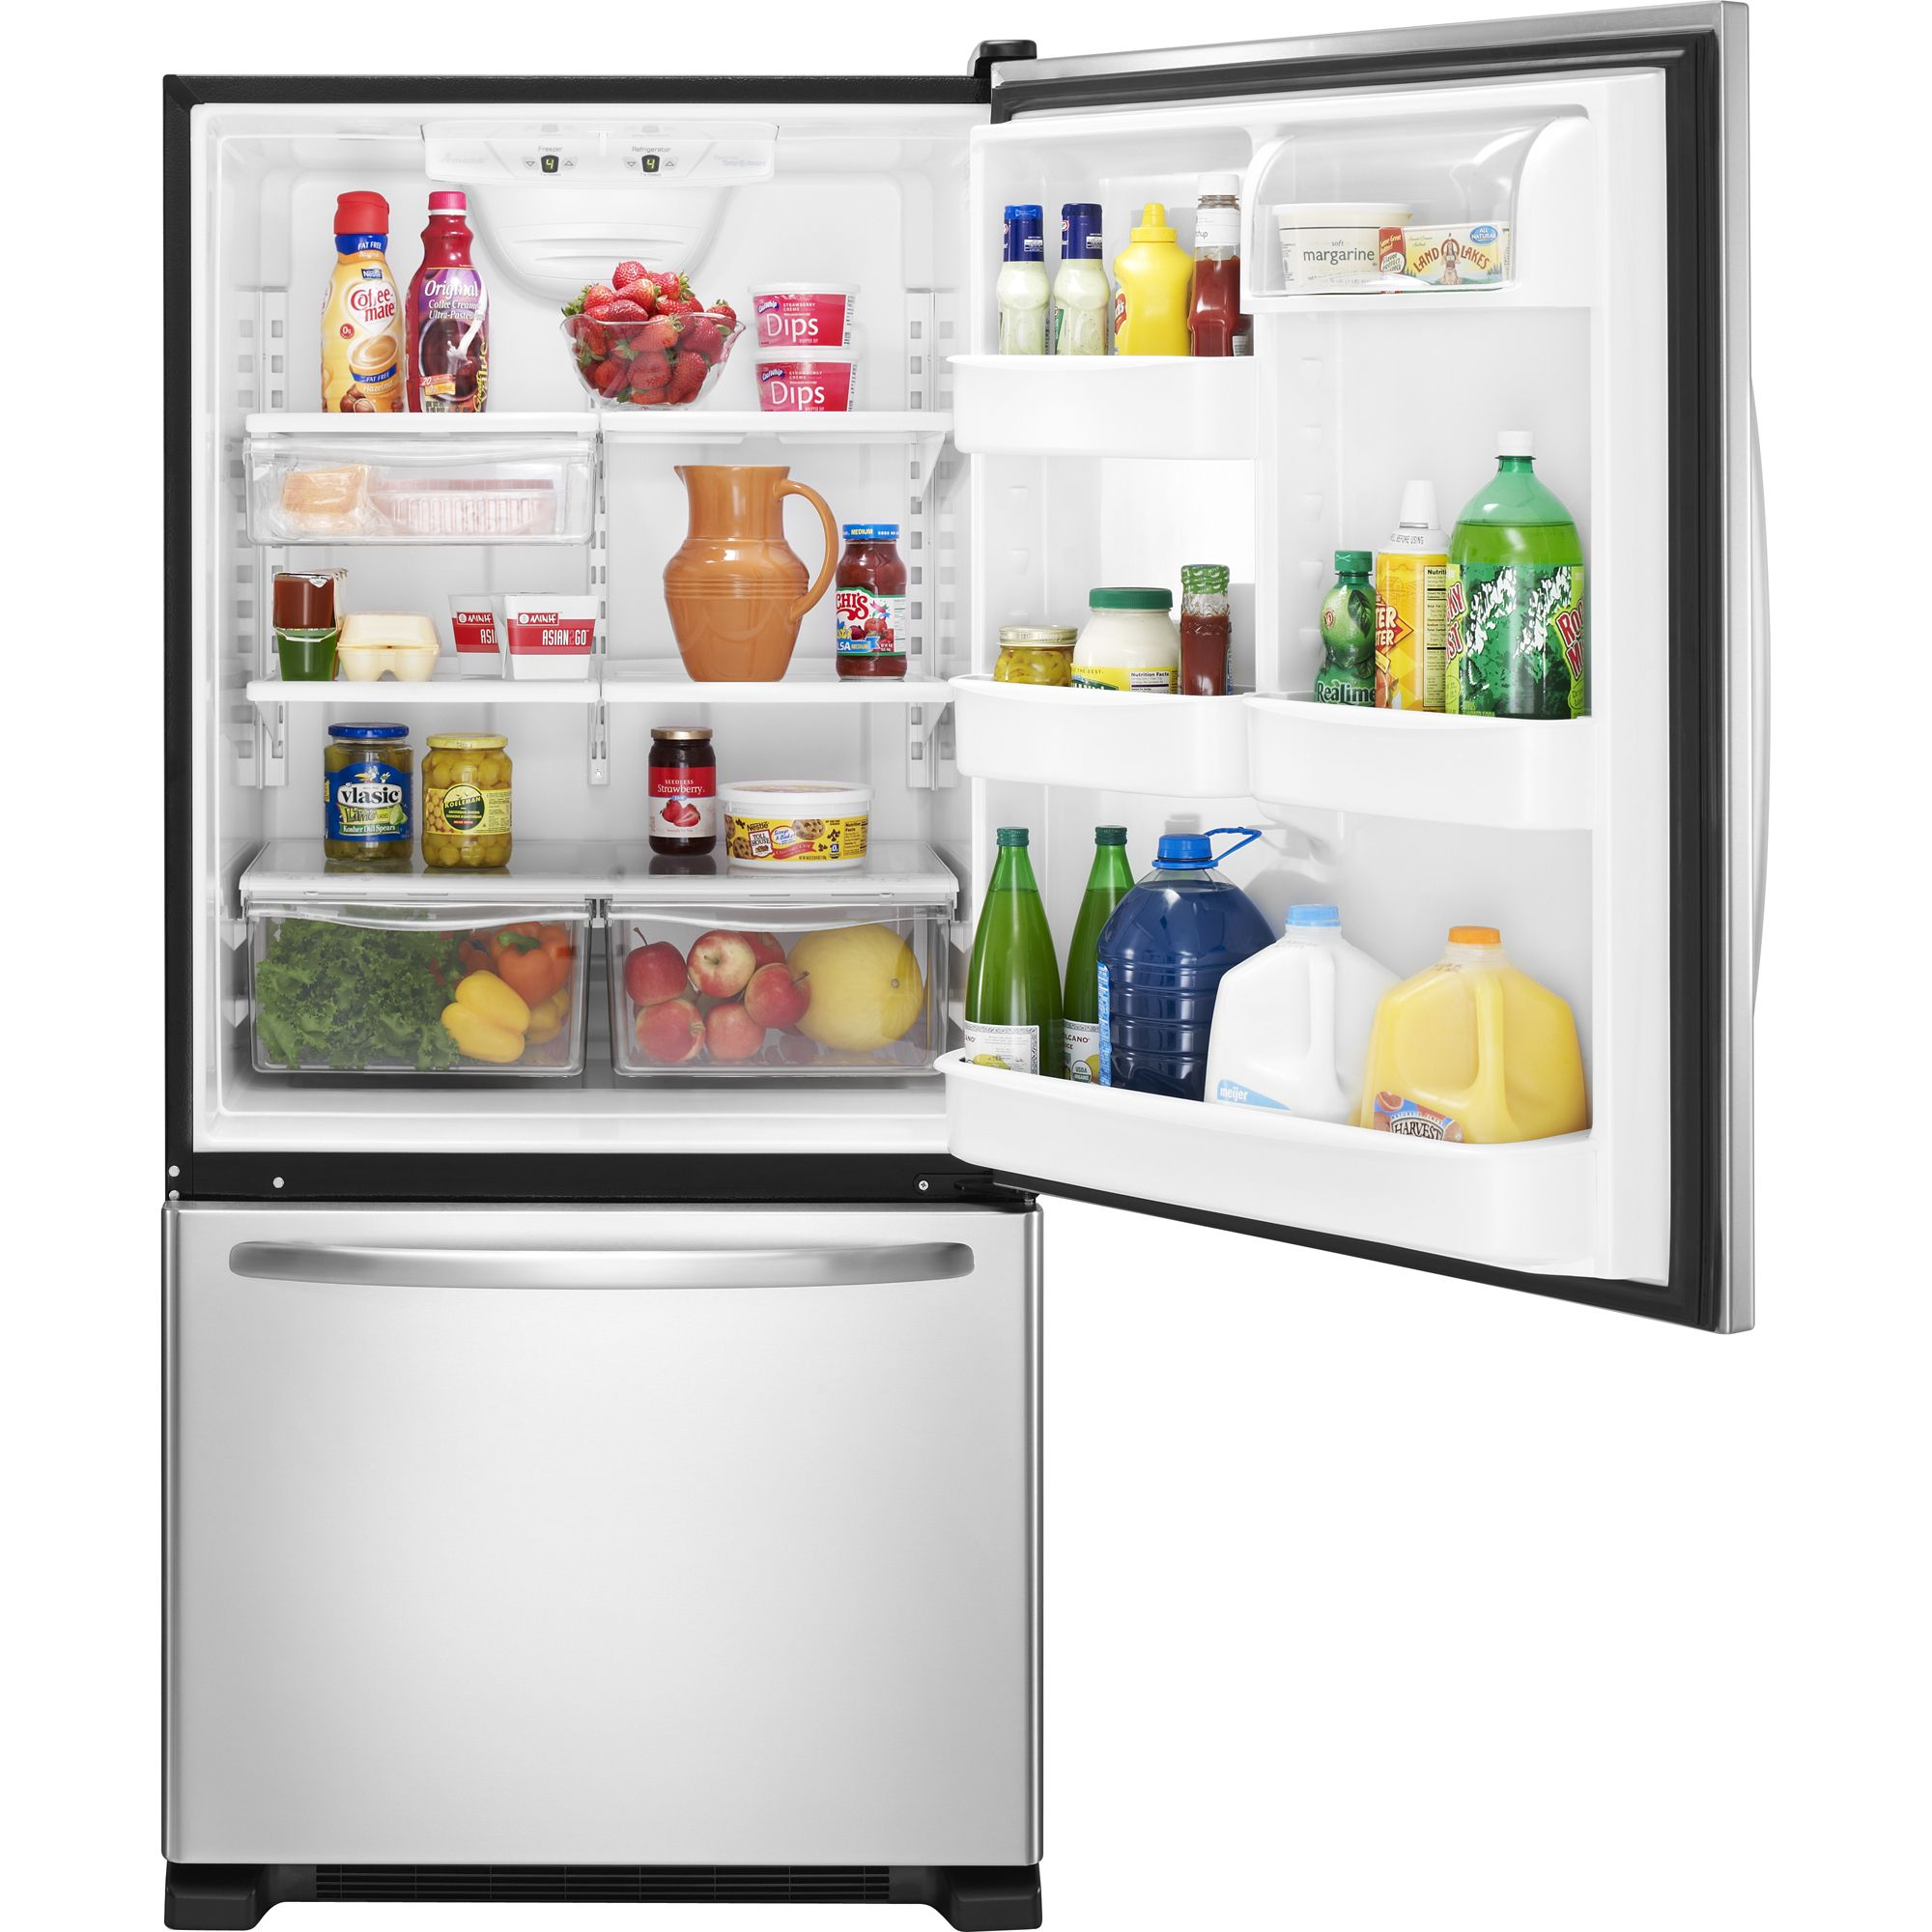 Amana 18.5 cu. ft. Single Door Bottom Freezer Refrigerator - Stainless Steel